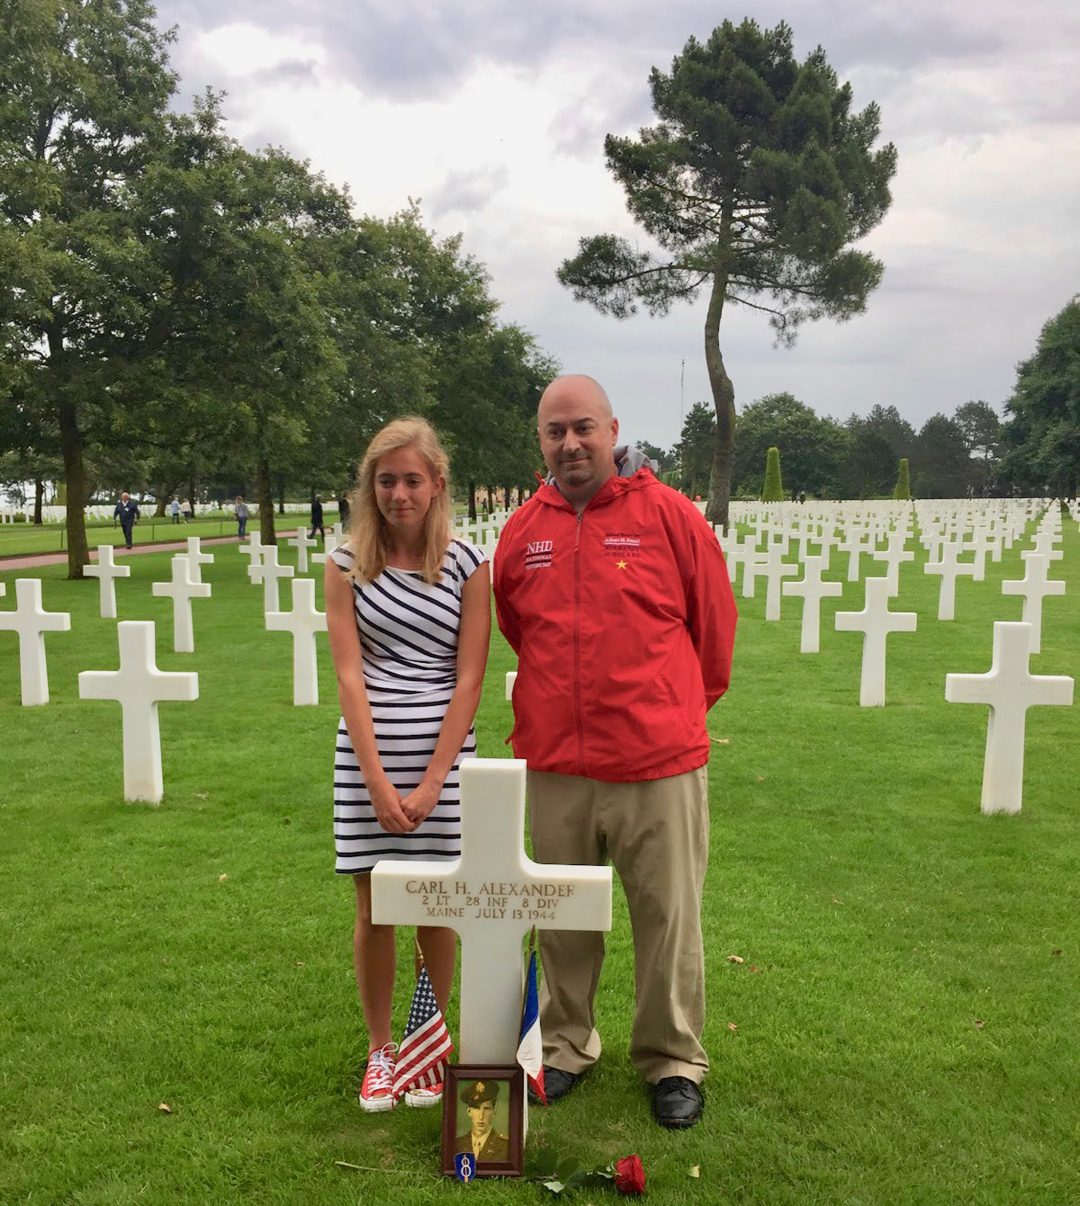 Teacher travel grants for History and Social Studies educators: 6 funded global education programs! With a student near the grave of 2nd Lt. Carl H. Alexander of Maine at the Normandy American Cemetery in France.